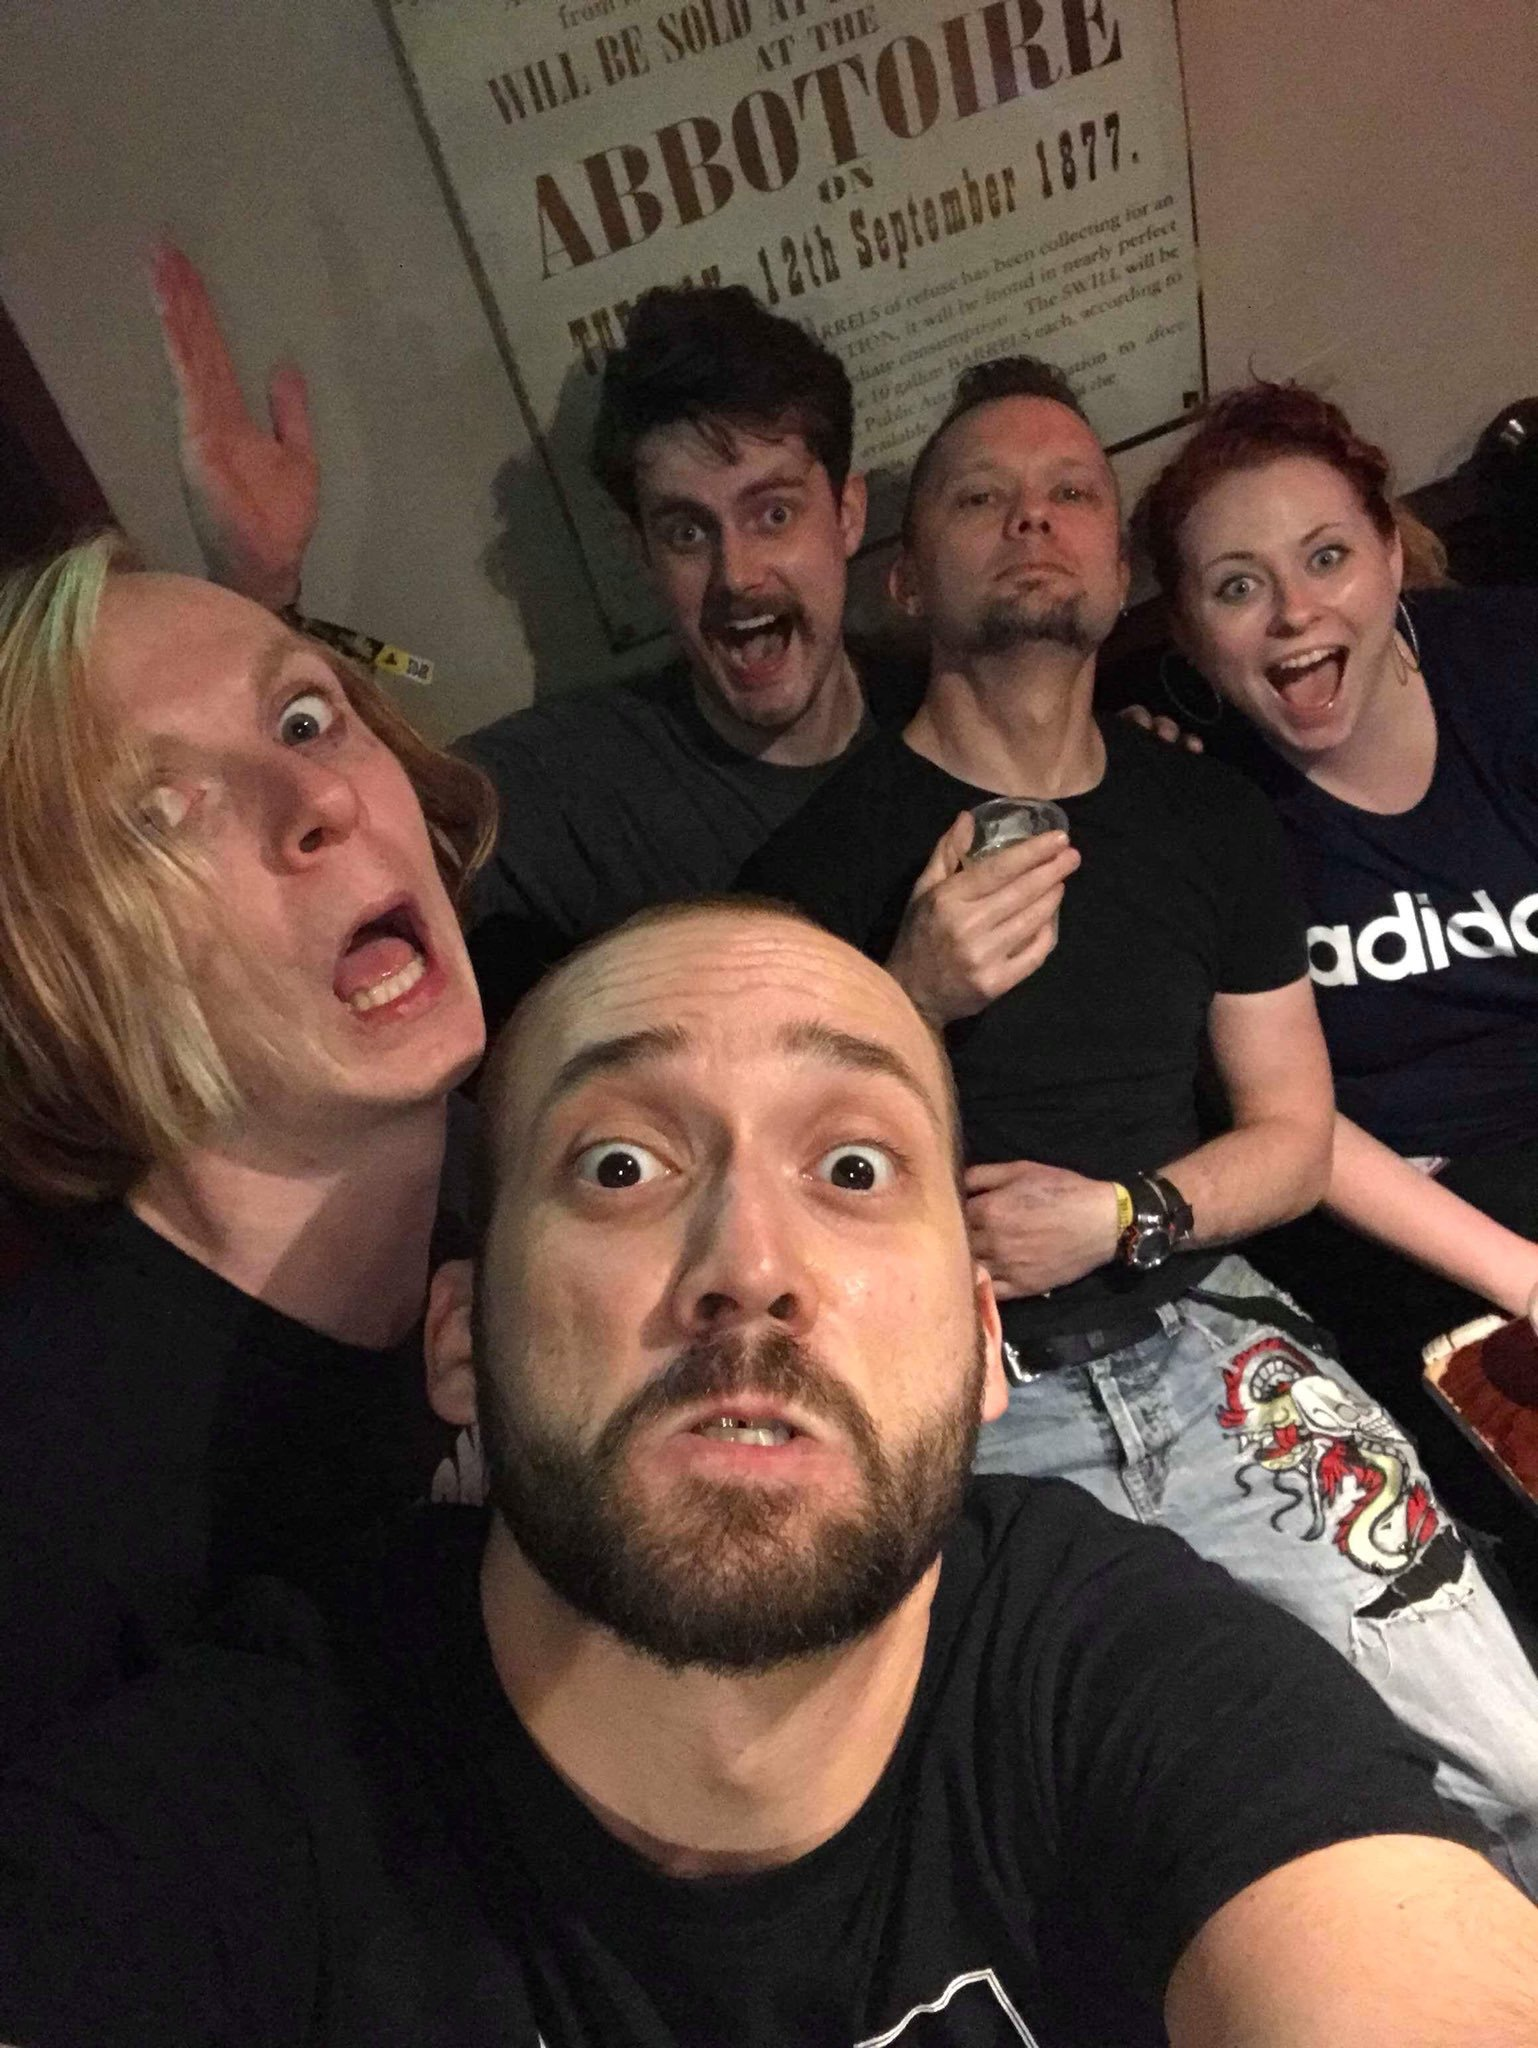 Last comics standing at 2AM. From left: red Redmond (Scarlet SoHandsome), Evan Desmaerais, James meeha, Amy Gledhill and Sully O'Sullivan